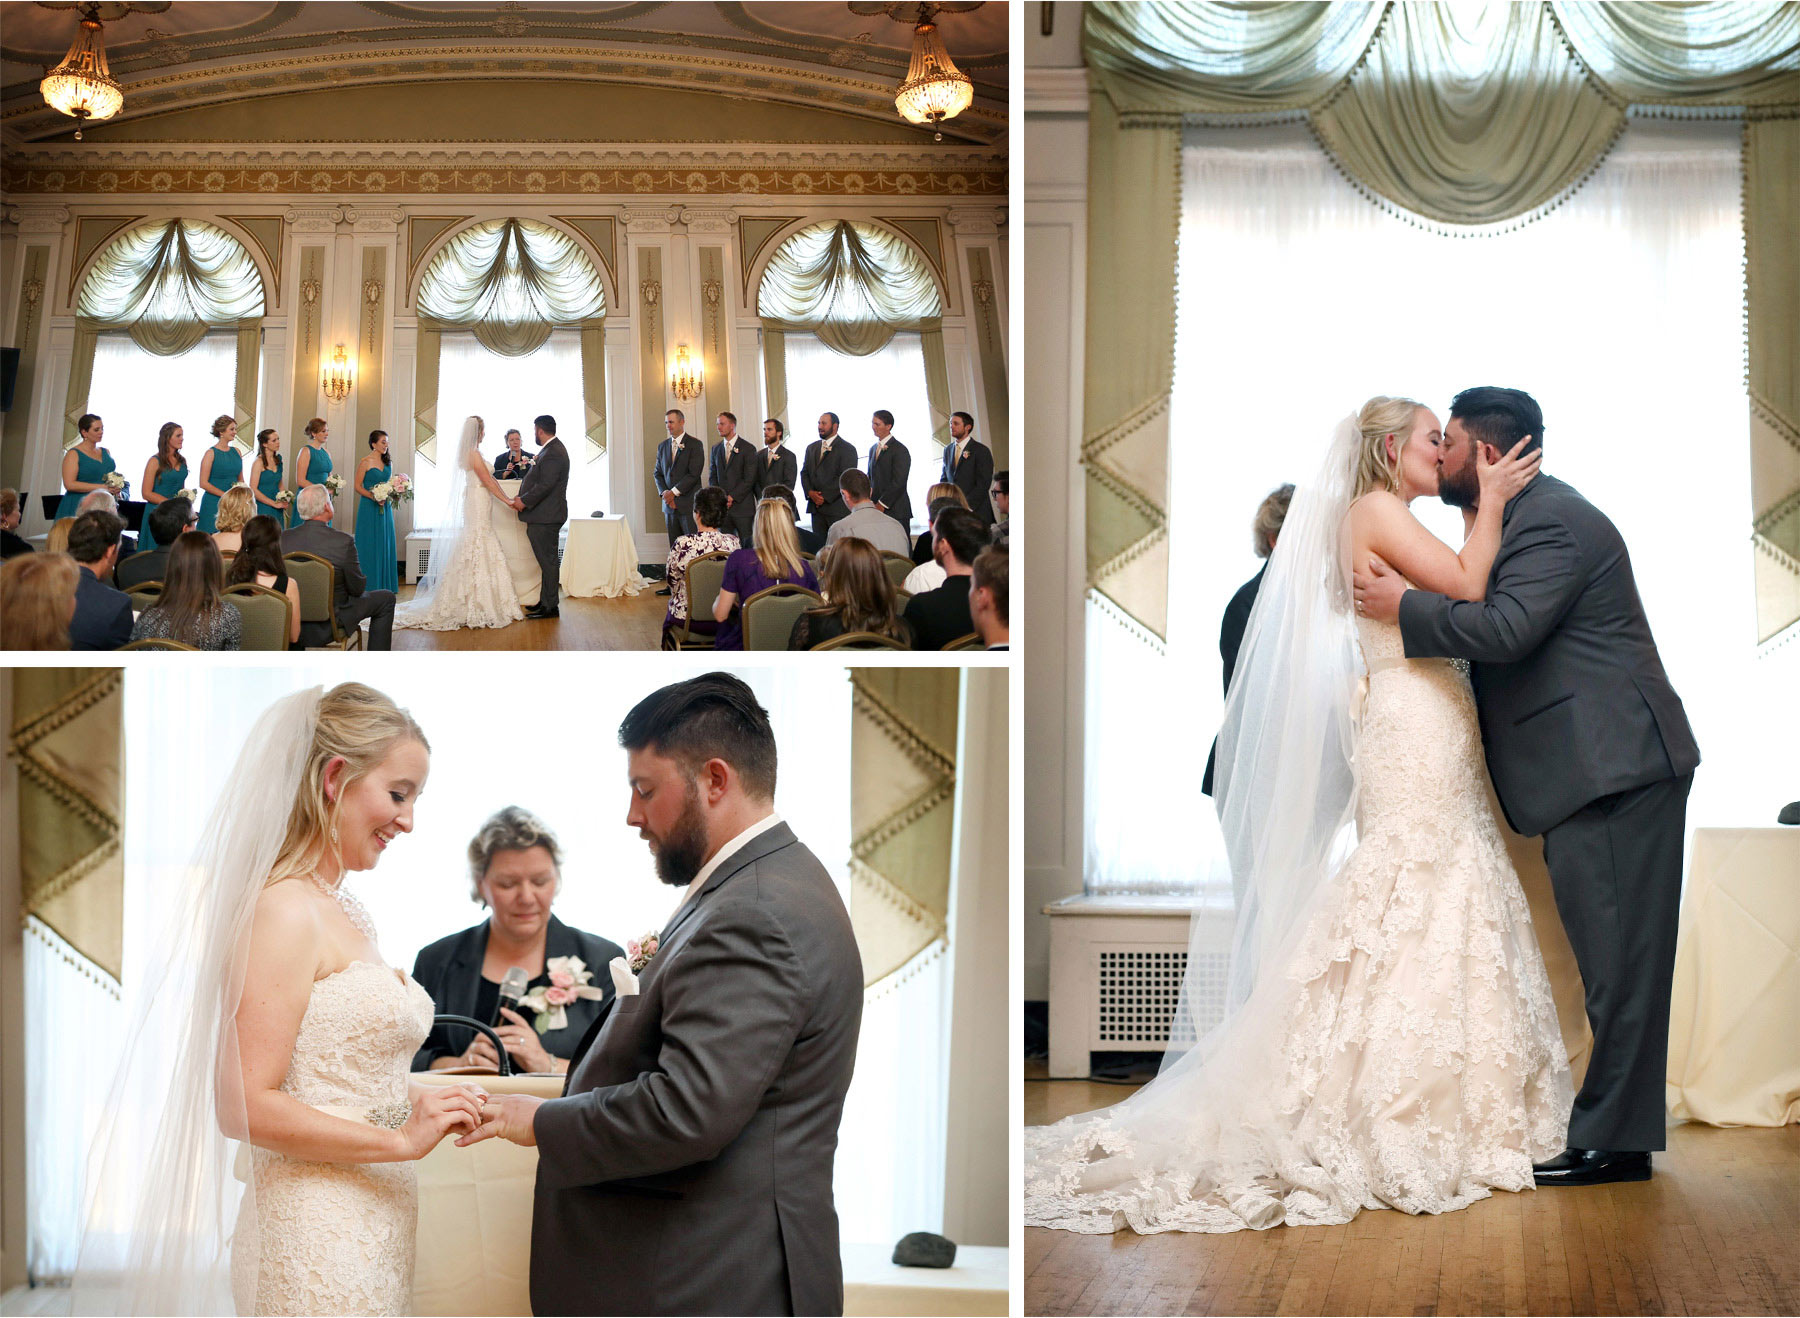 15-Duluth-Minnesota-Wedding-Photographer-by-Andrew-Vick-Photography-Fall-Autumn-Greysolon-Ballroom-Ceremony-Bride-Groom-Vows-Rings-Kiss-Molly-and-Carson.jpg